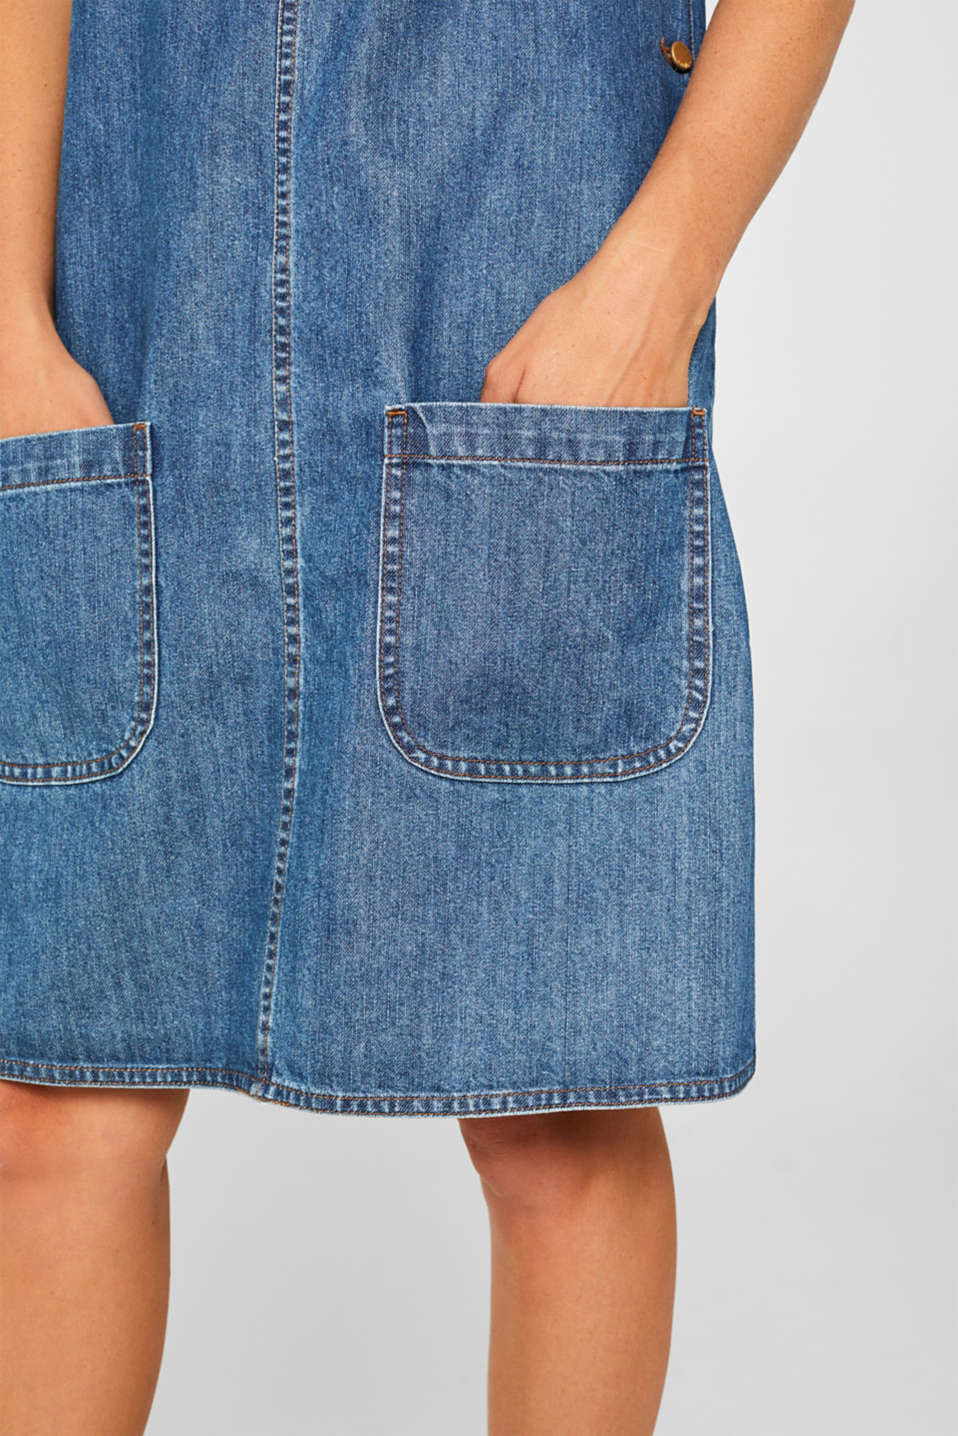 Denim dungaree dress, 100% cotton, BLUE MEDIUM WASH, detail image number 7